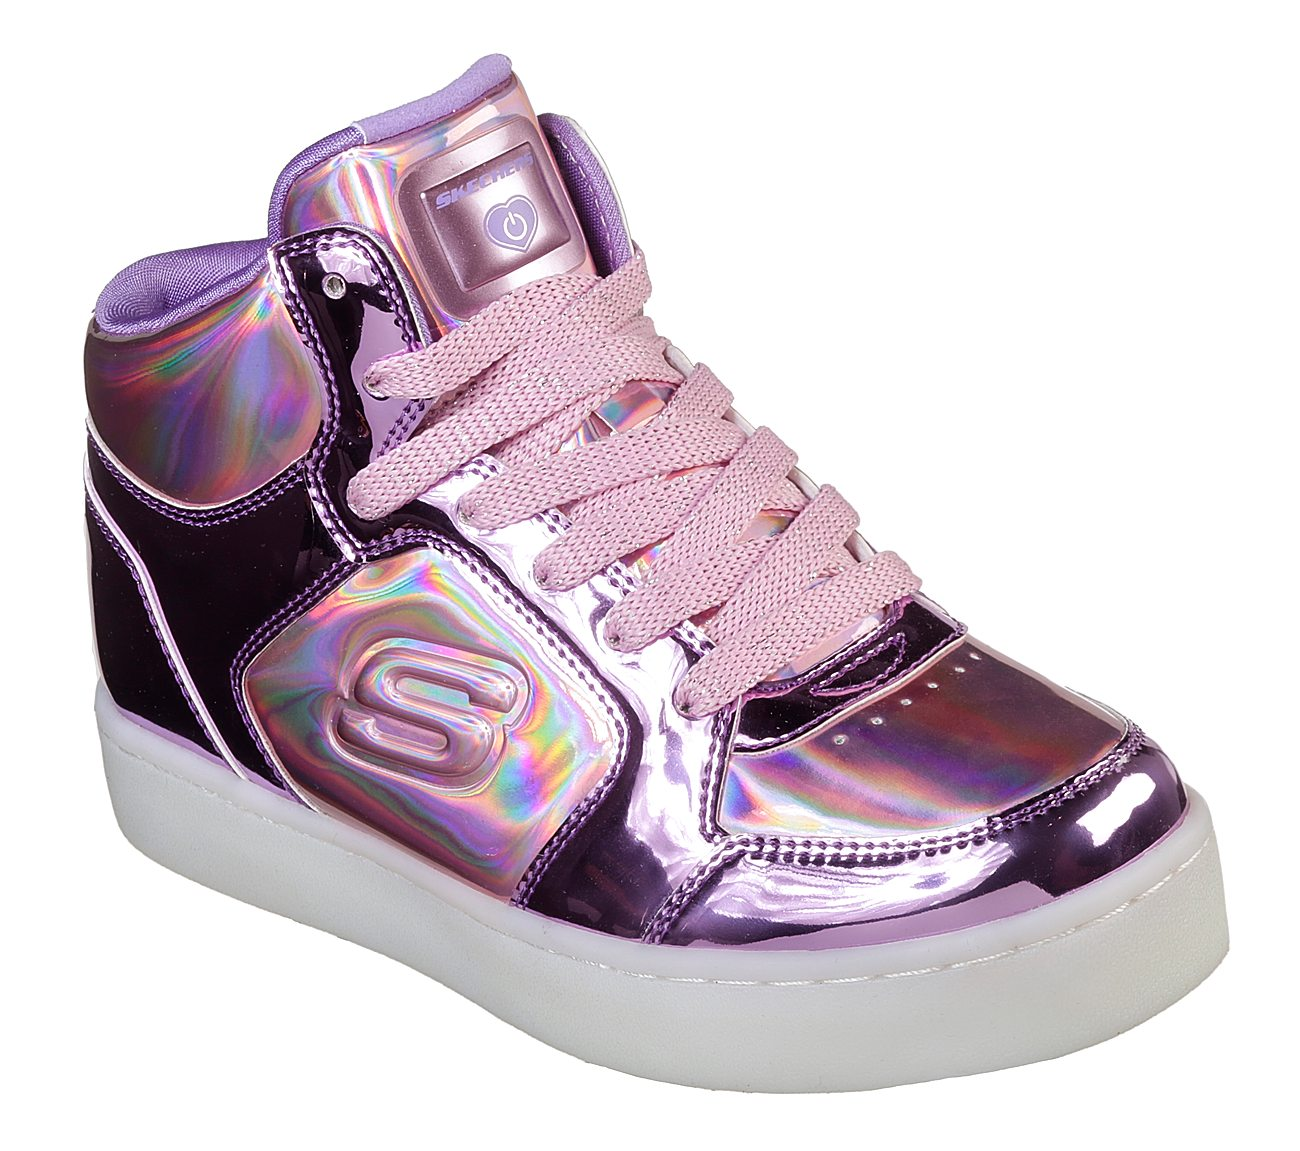 check out newest best authentic Skechers S LIGHTS: ENERGY LIGHTS SHINY BRIGHTS LED Sneakers